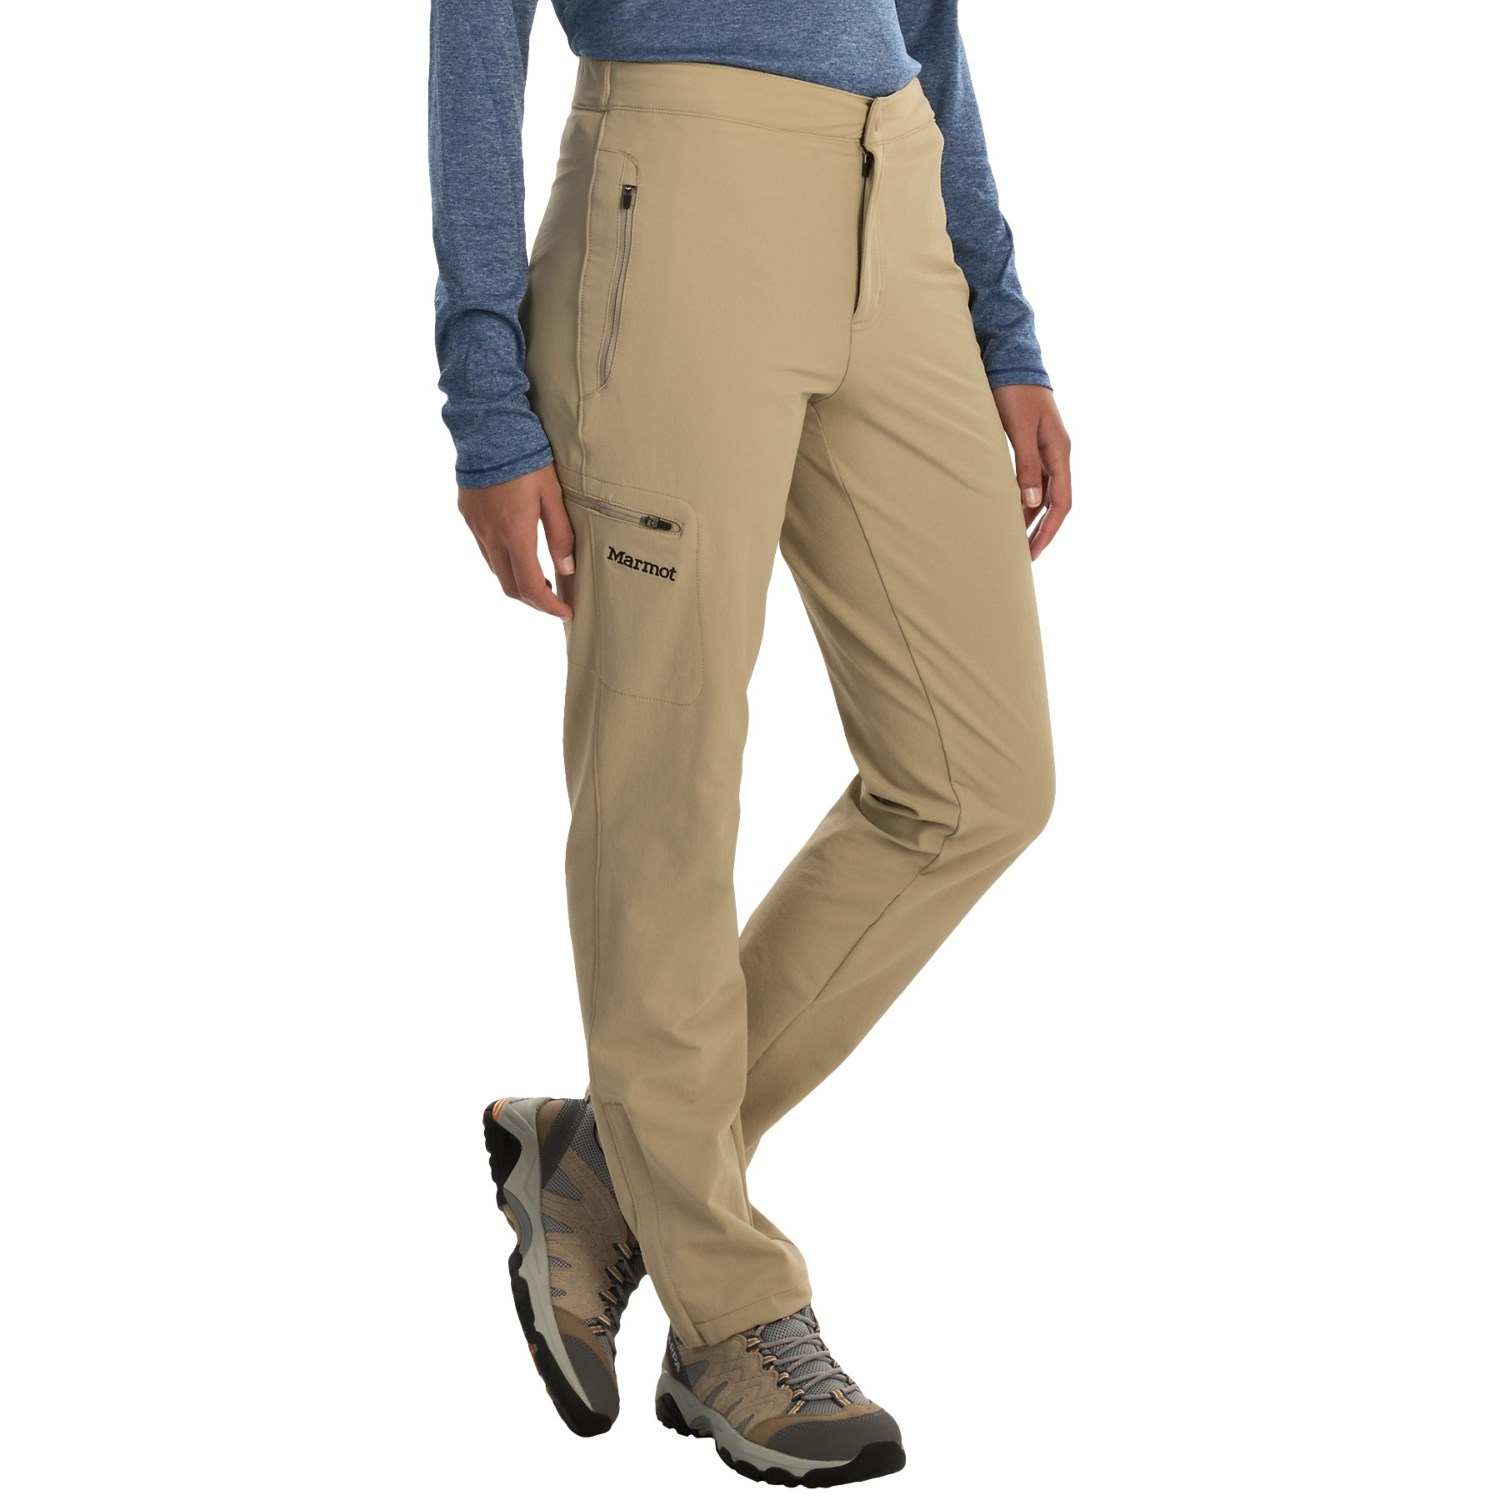 In the gym or on the trail, you'll find comfort and performance with women's active pants from Columbia Sportswear. Free shipping for members.